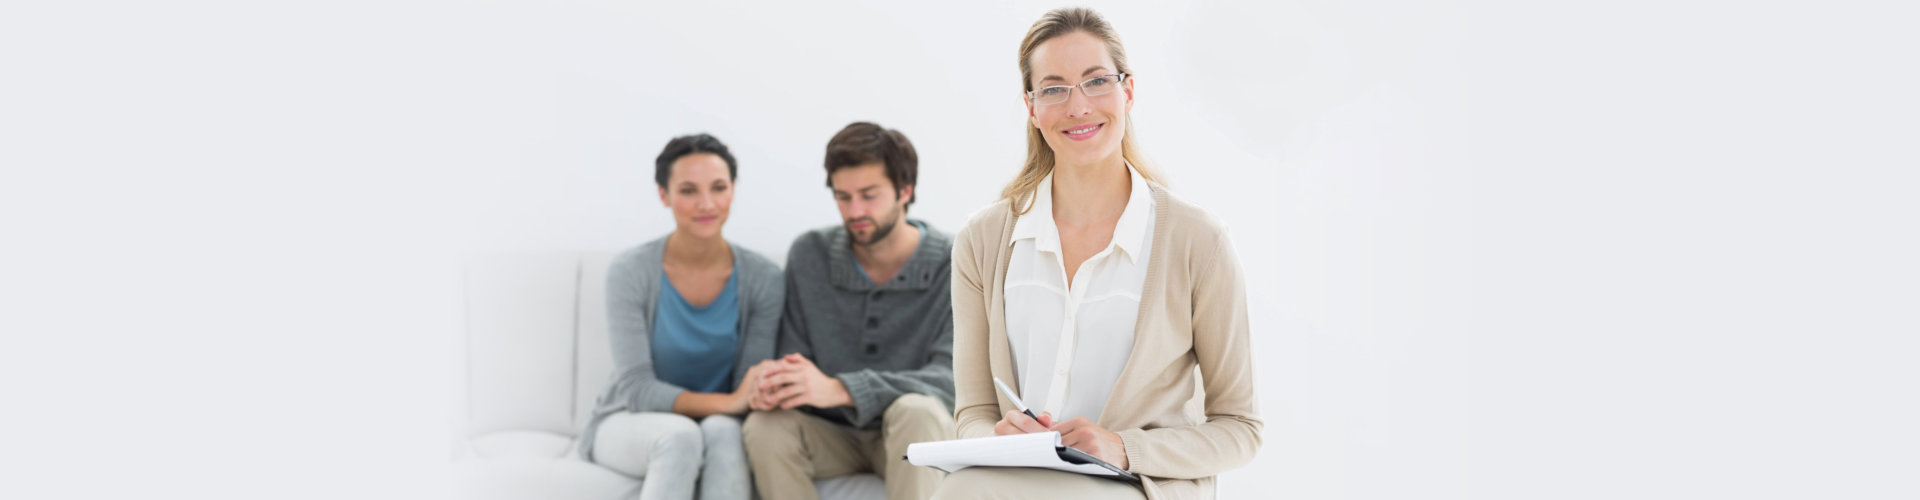 Psychiatrist with patients behind sitting on the chair